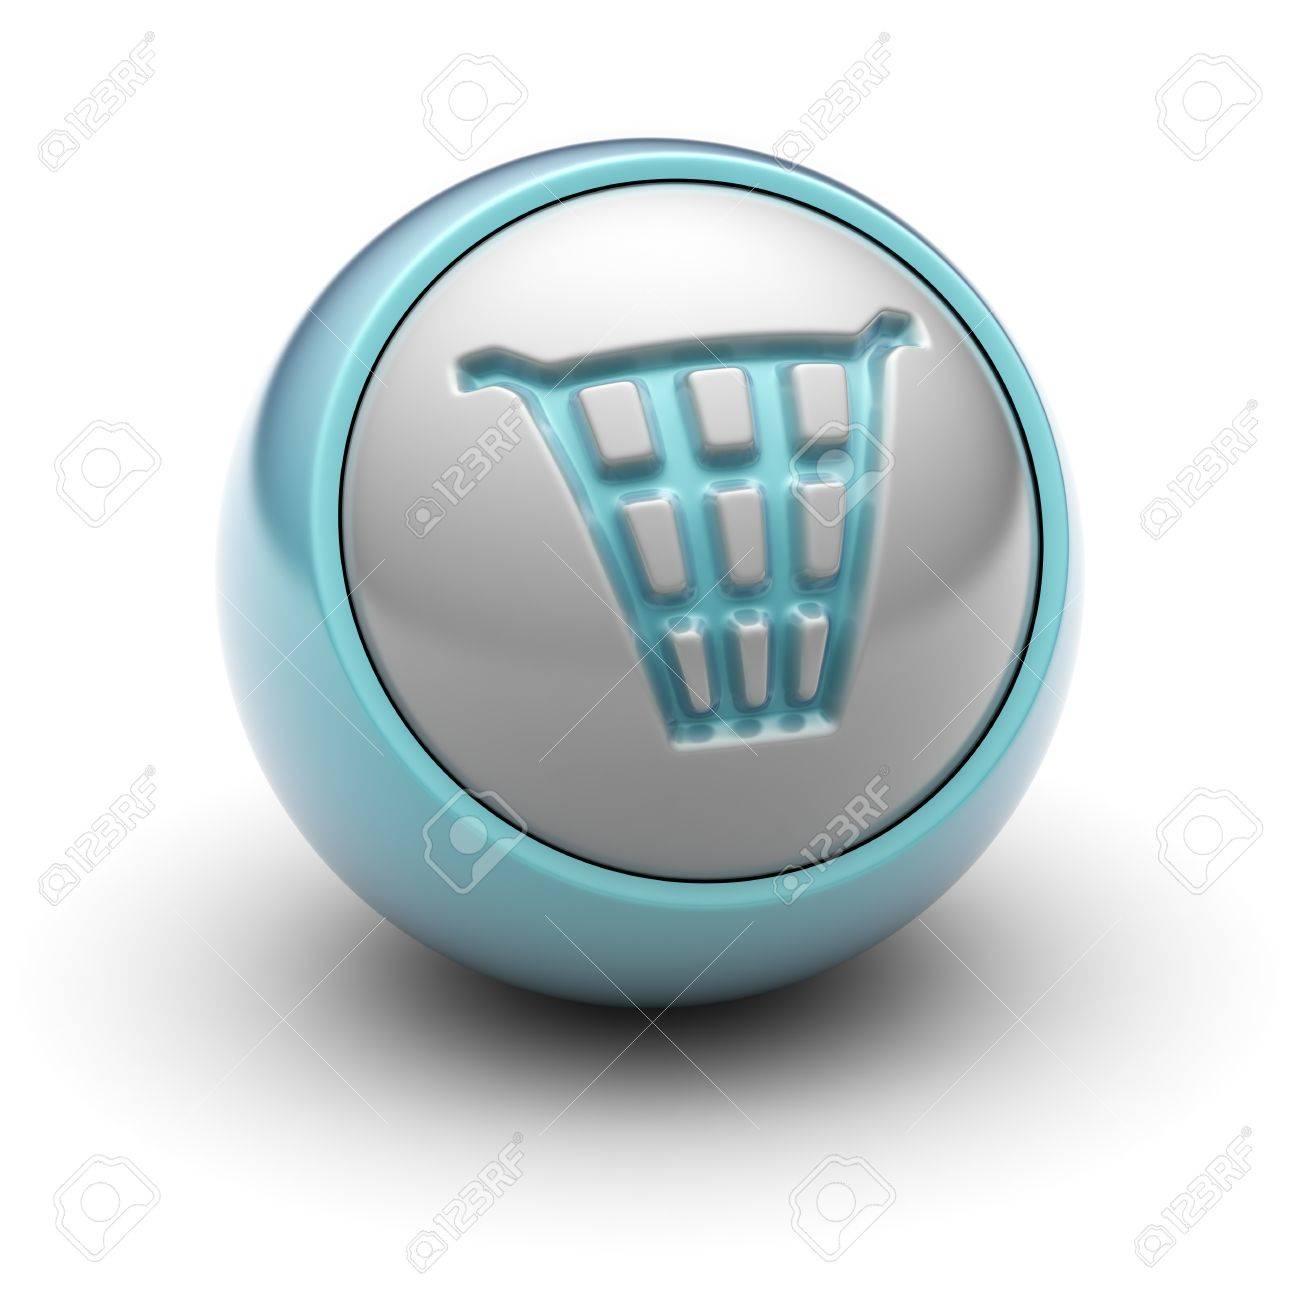 basket Stock Photo - 13295317